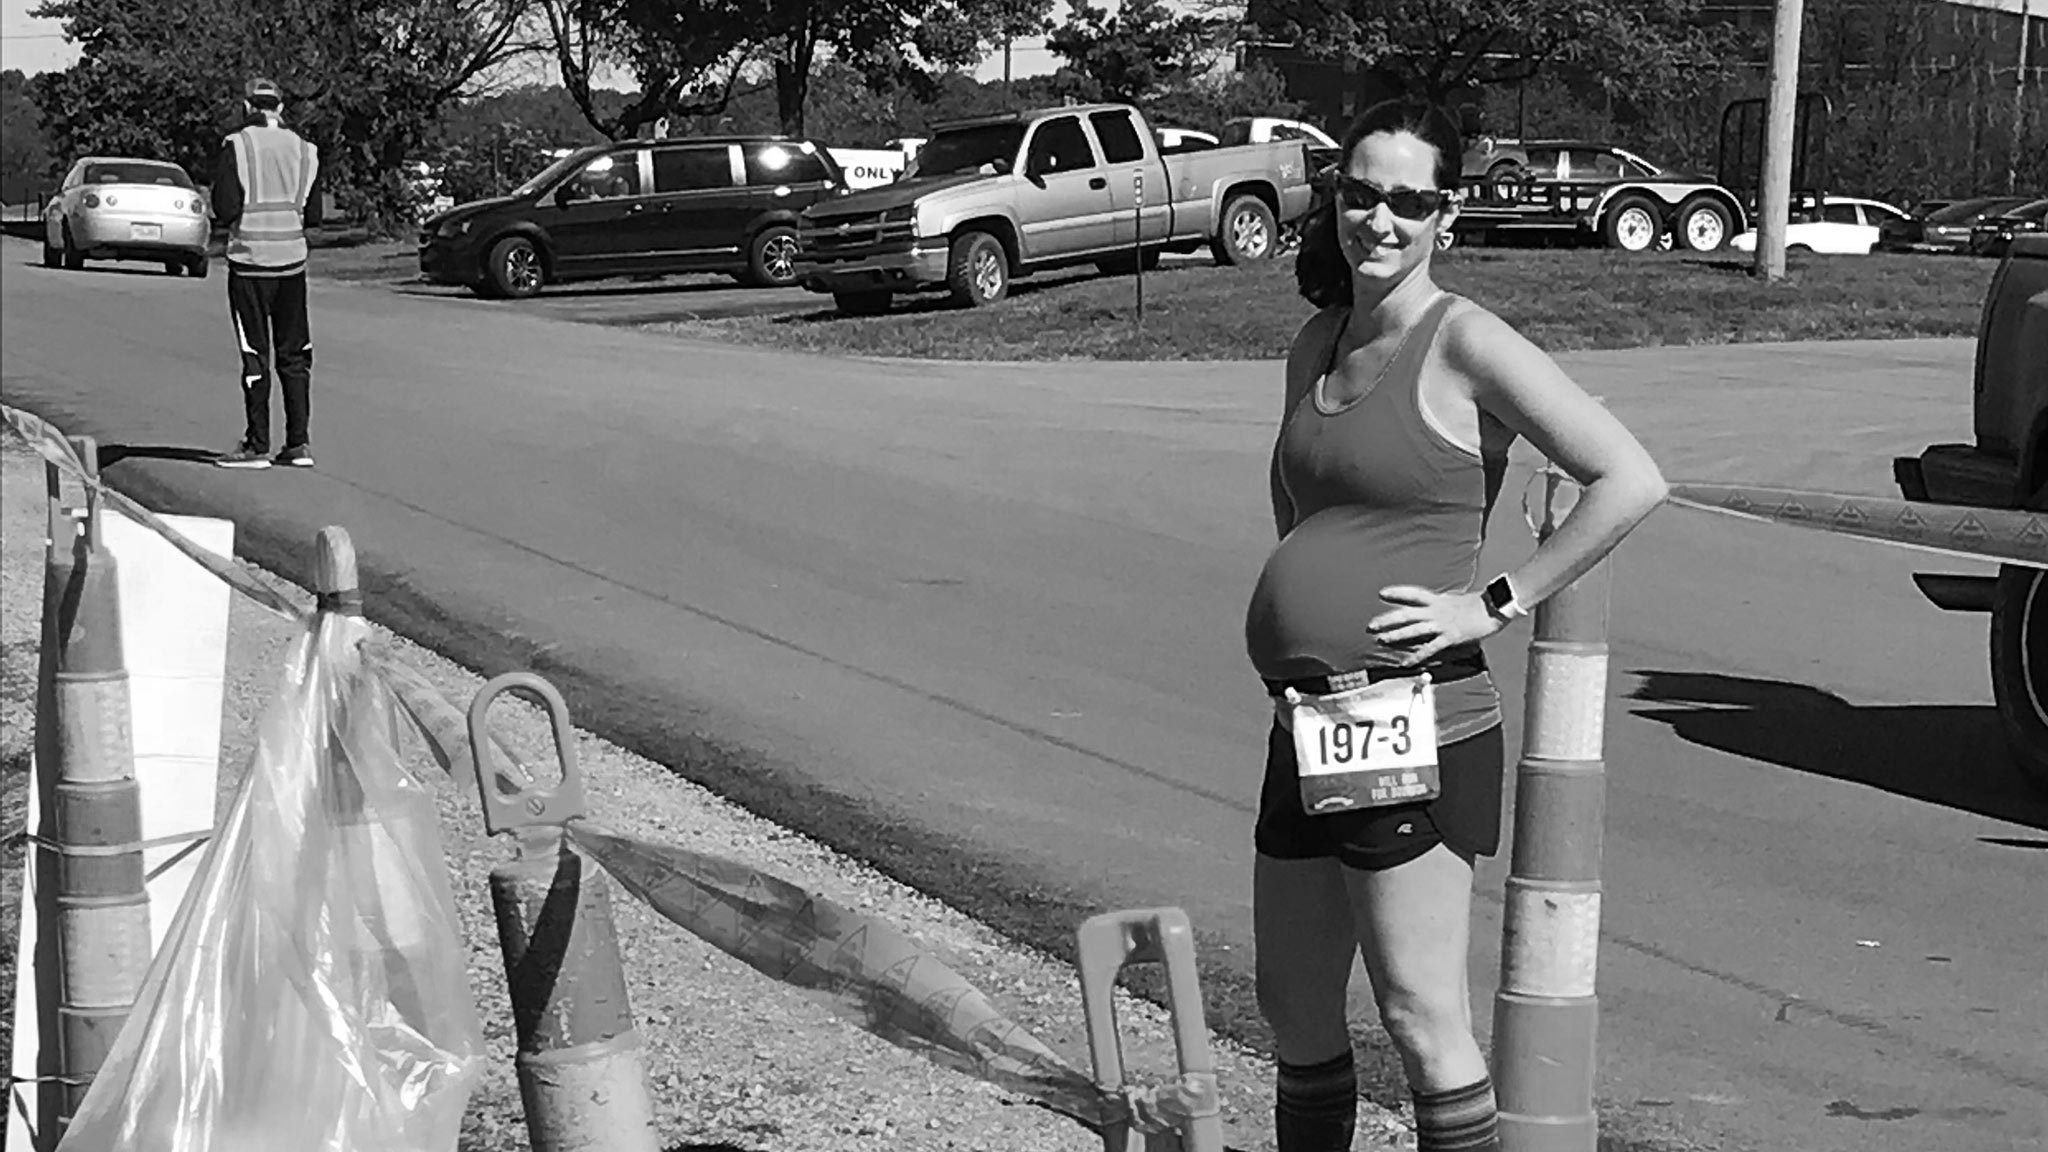 Amberlee stays active during her pregnancy by participating in marathons.